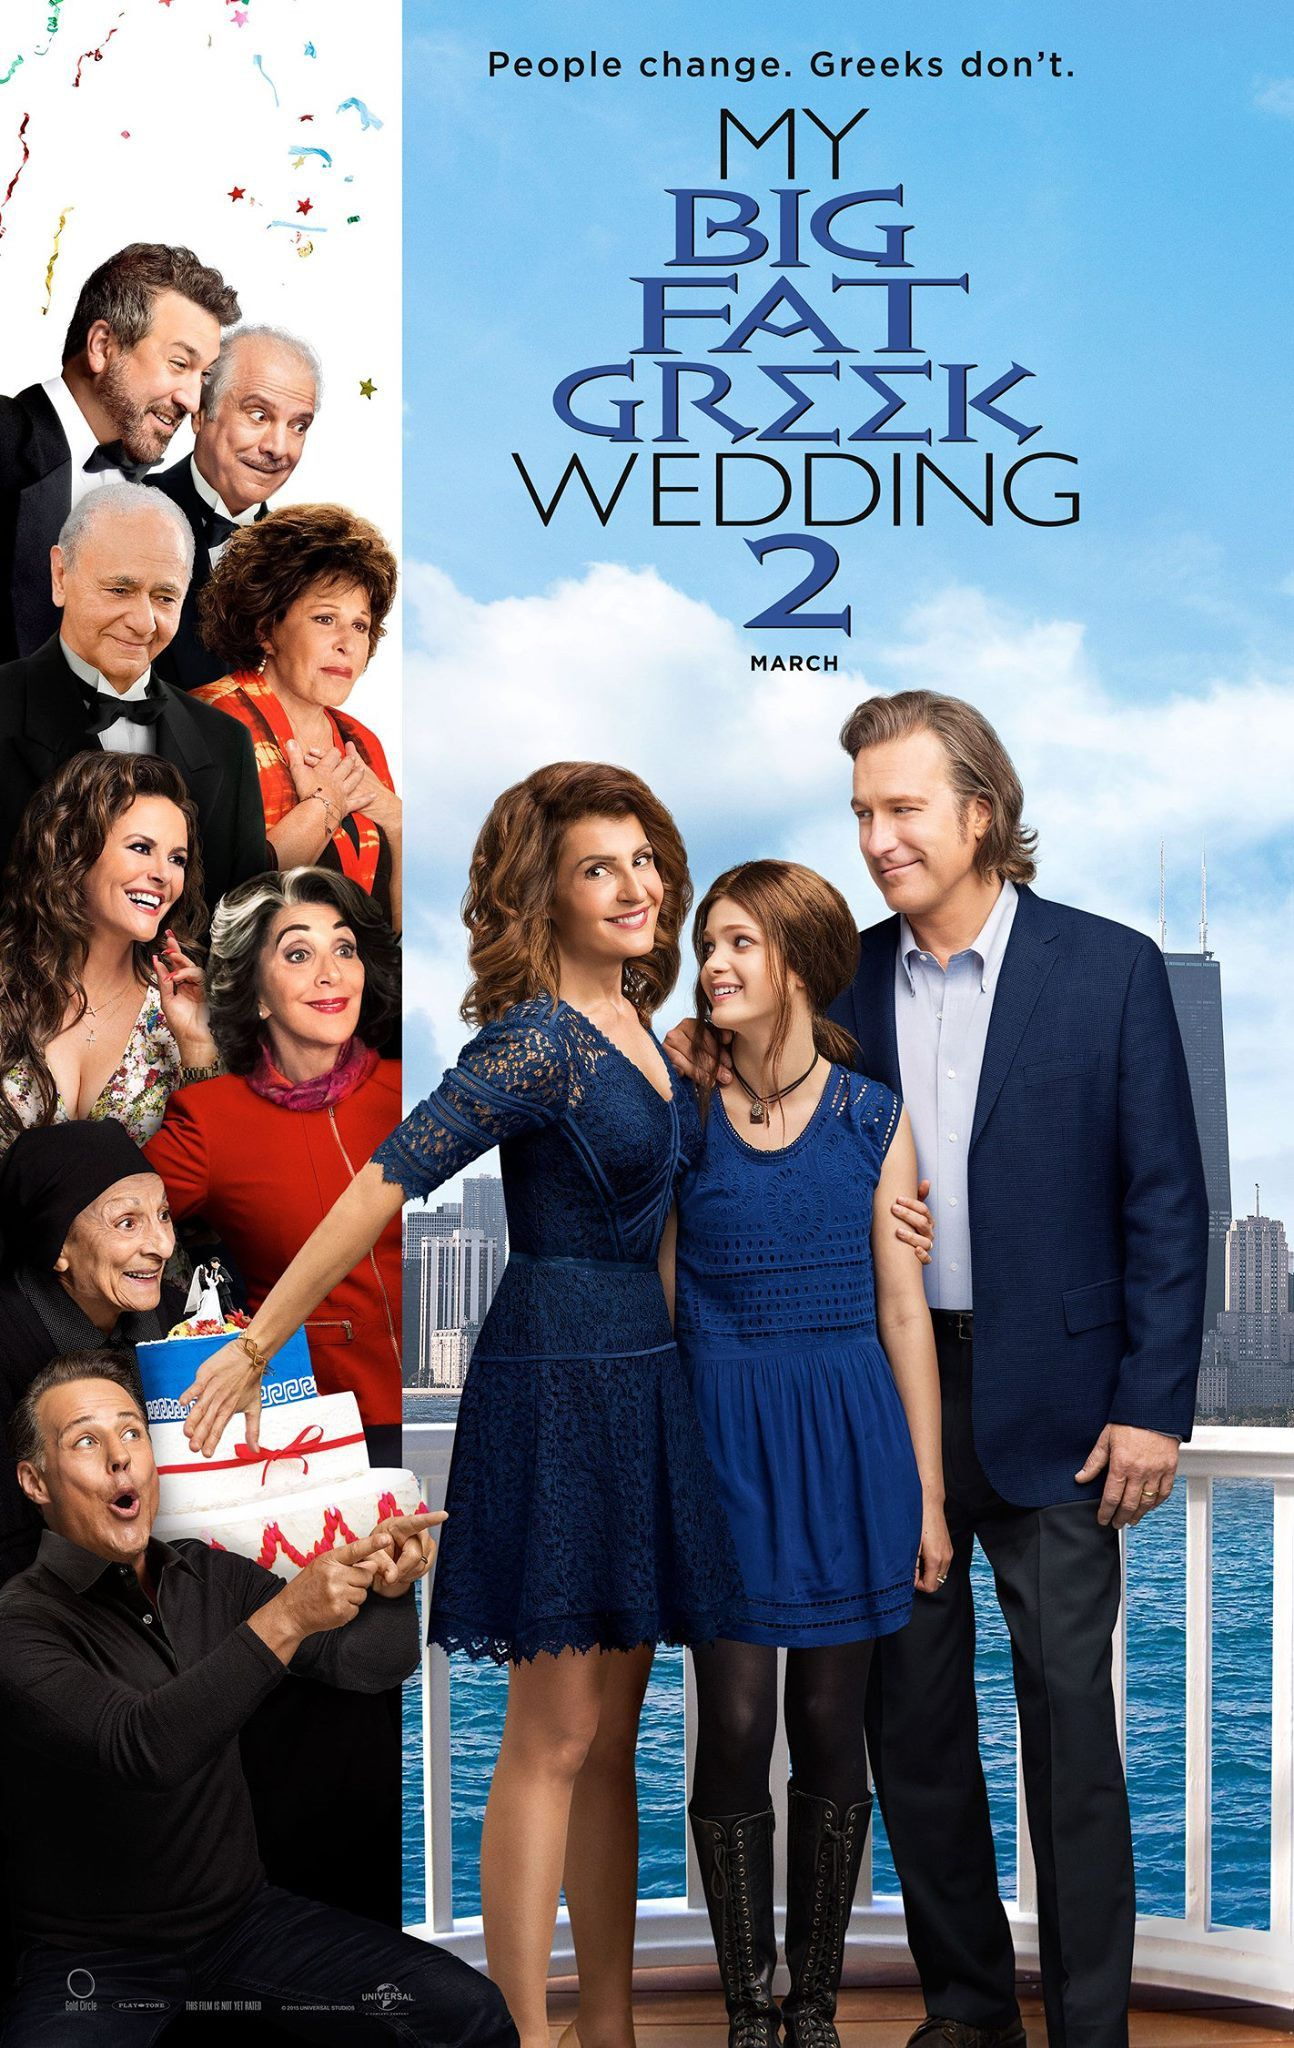 My big fat greek wedding 2 summary